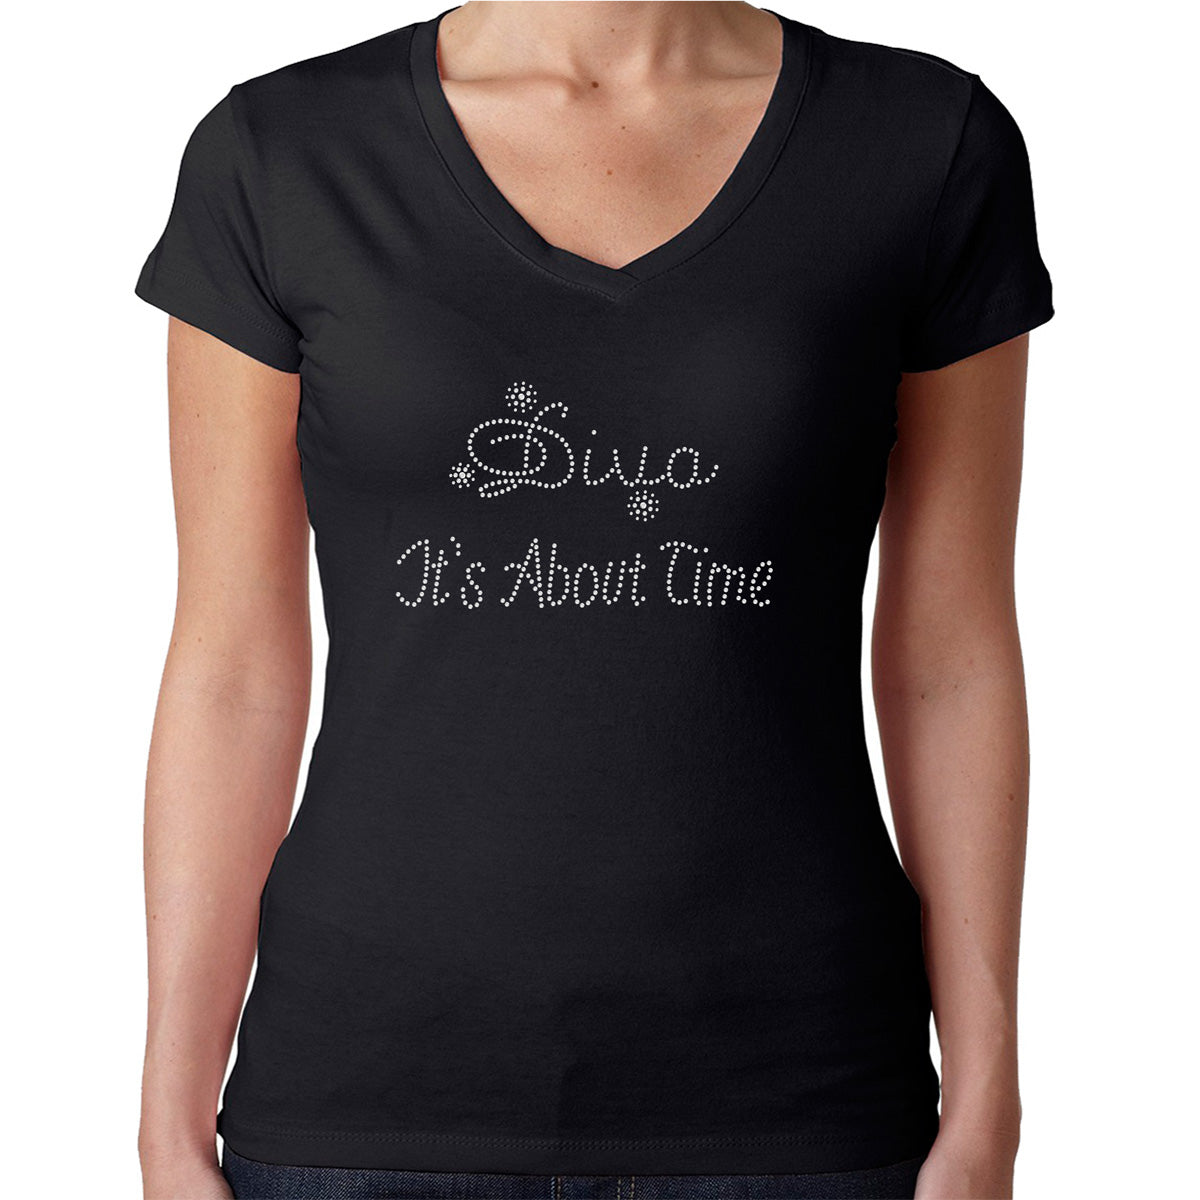 Womens T-Shirt Rhinestone Bling Black Fitted Tee Sparkling Diva Its About Time